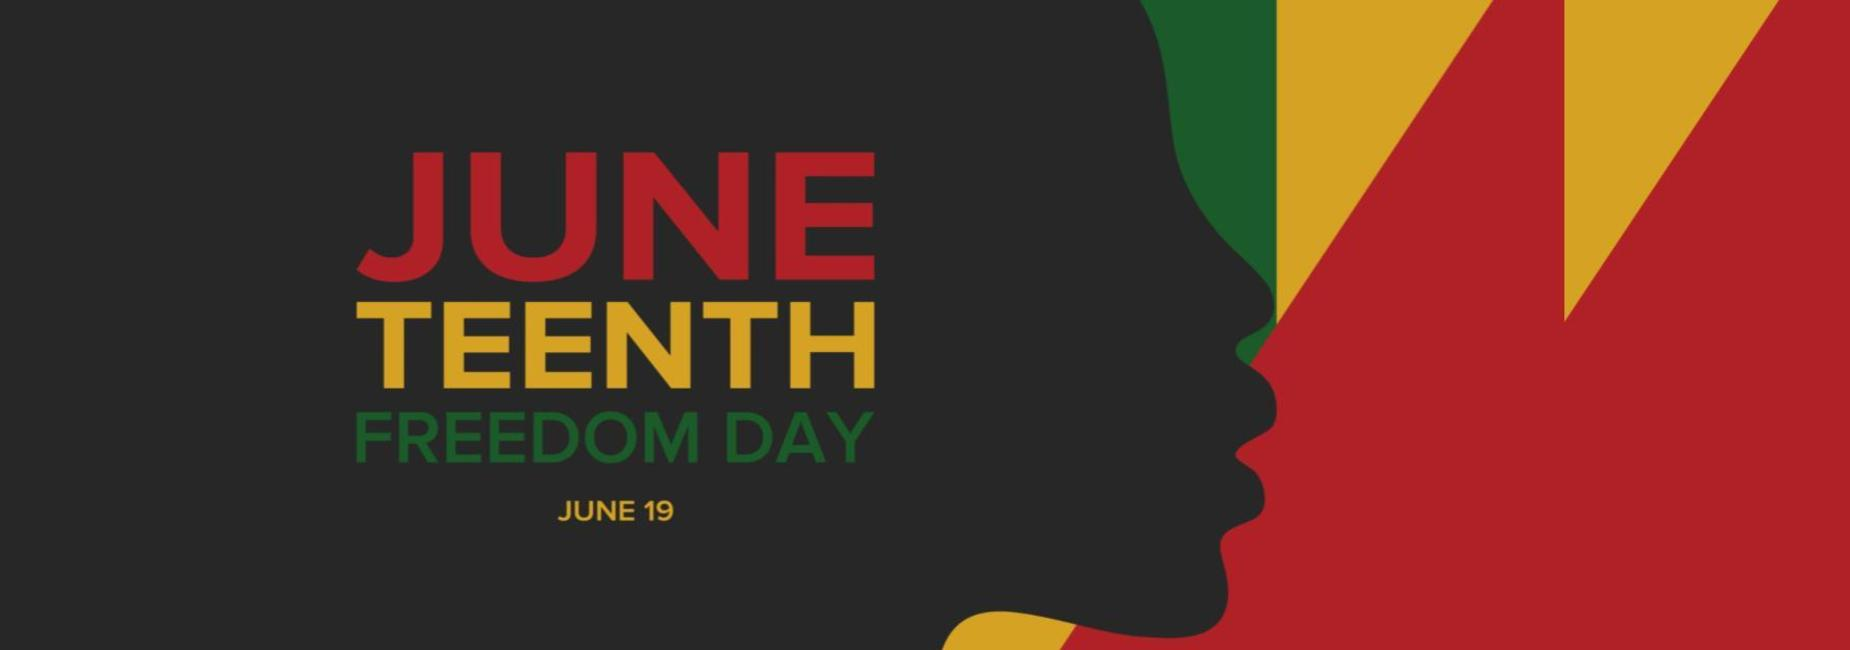 Juneteeth Freedom Day on June 19th Banner